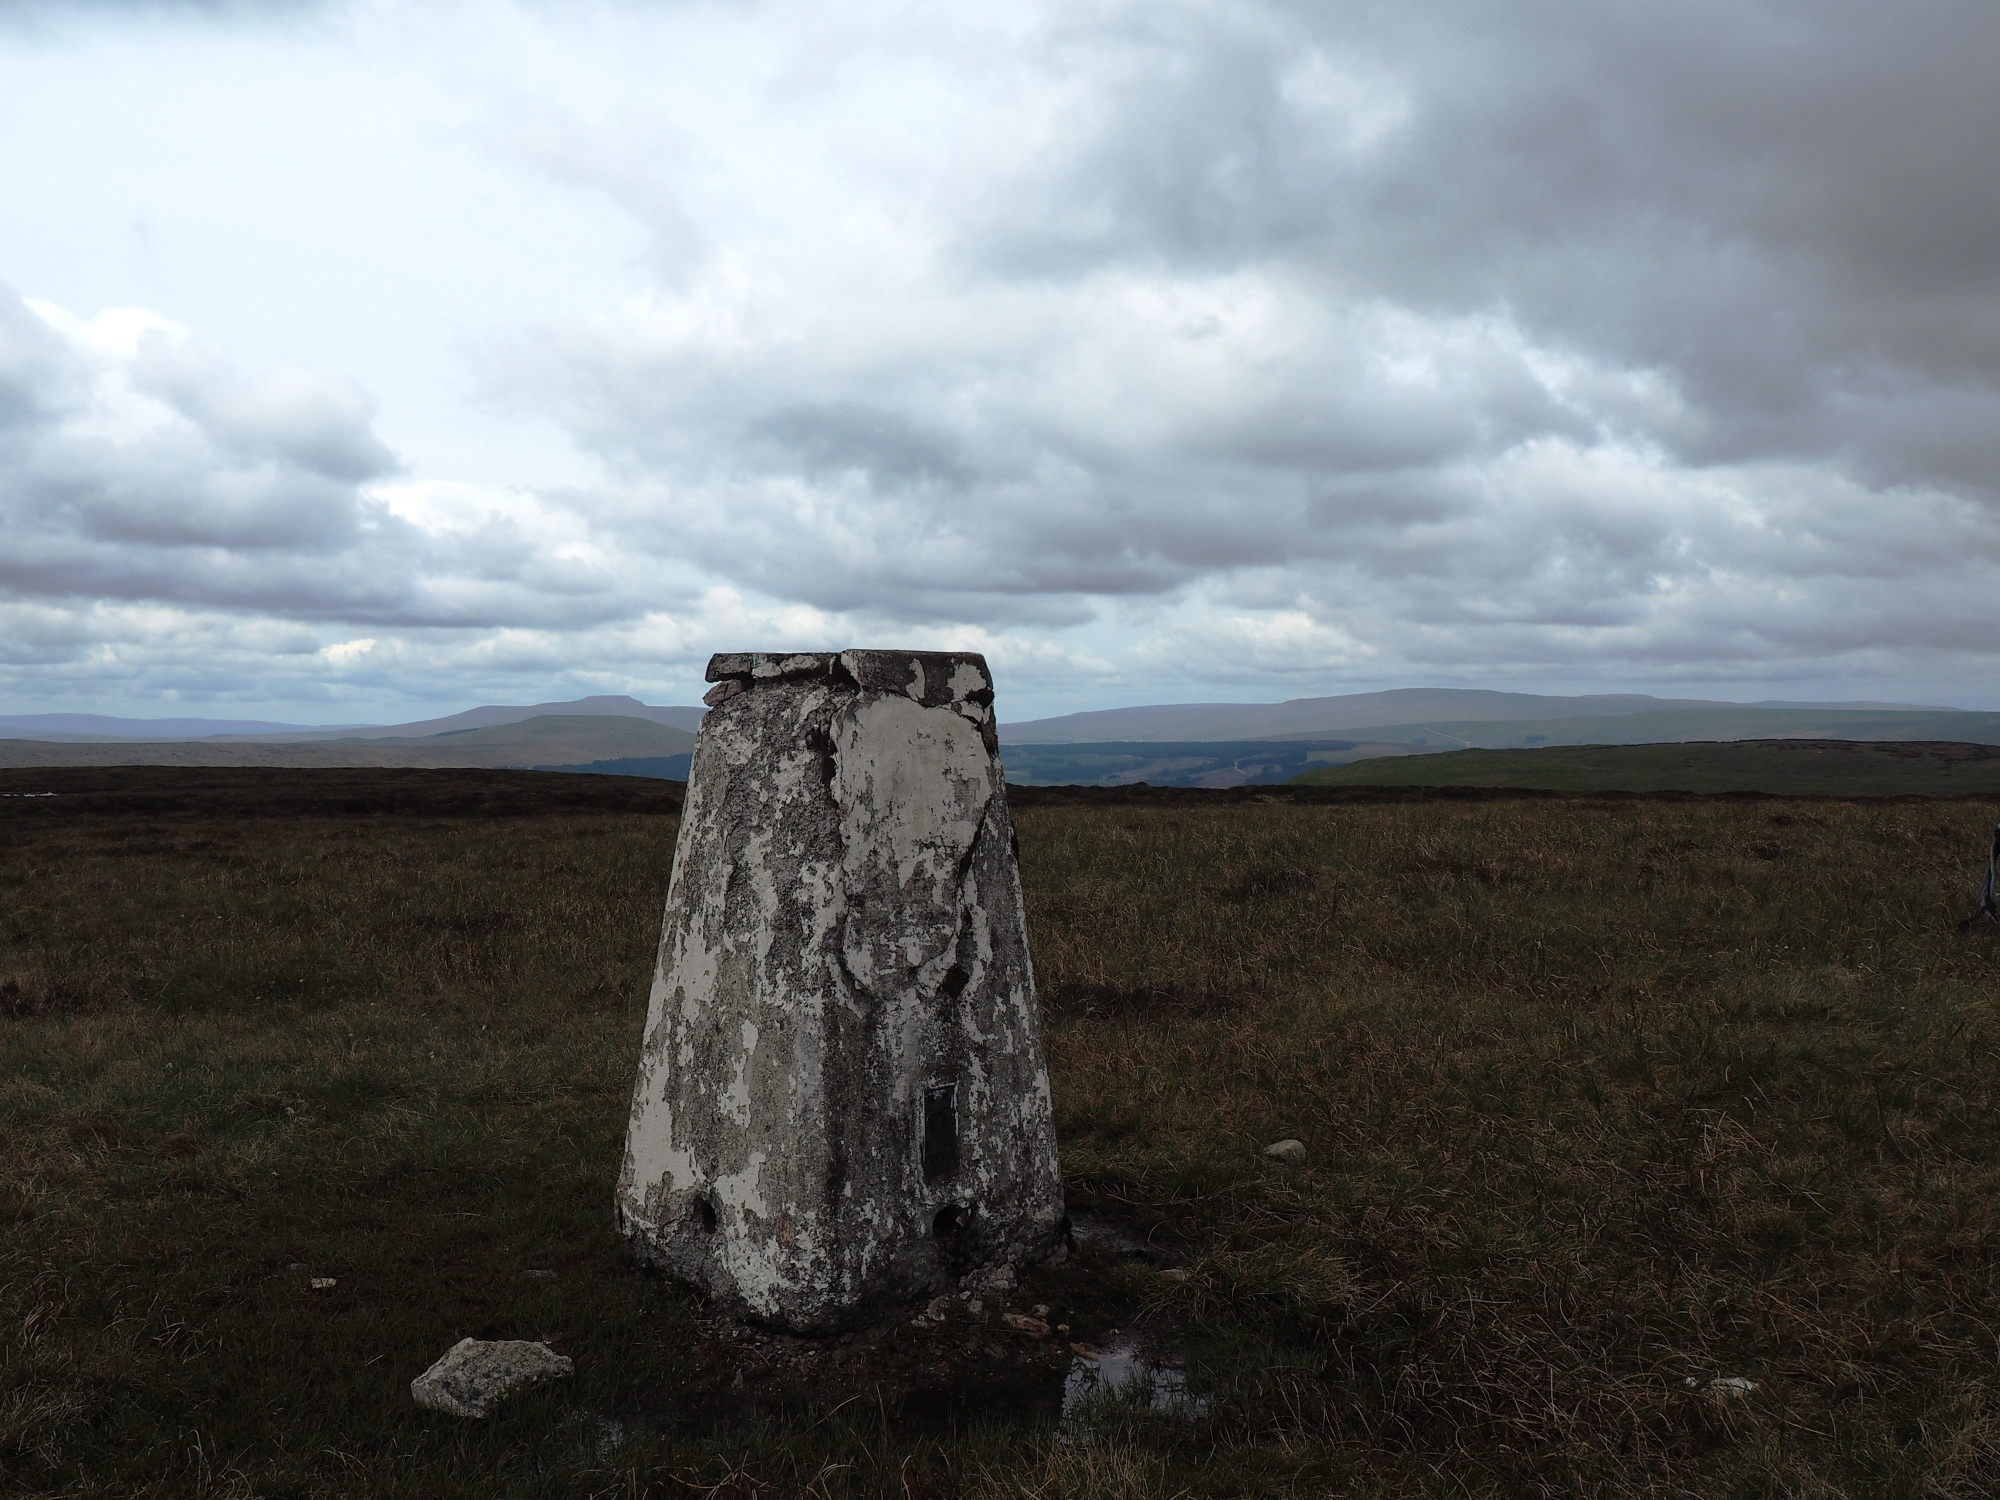 Yockenthwaite Moor Trig Point